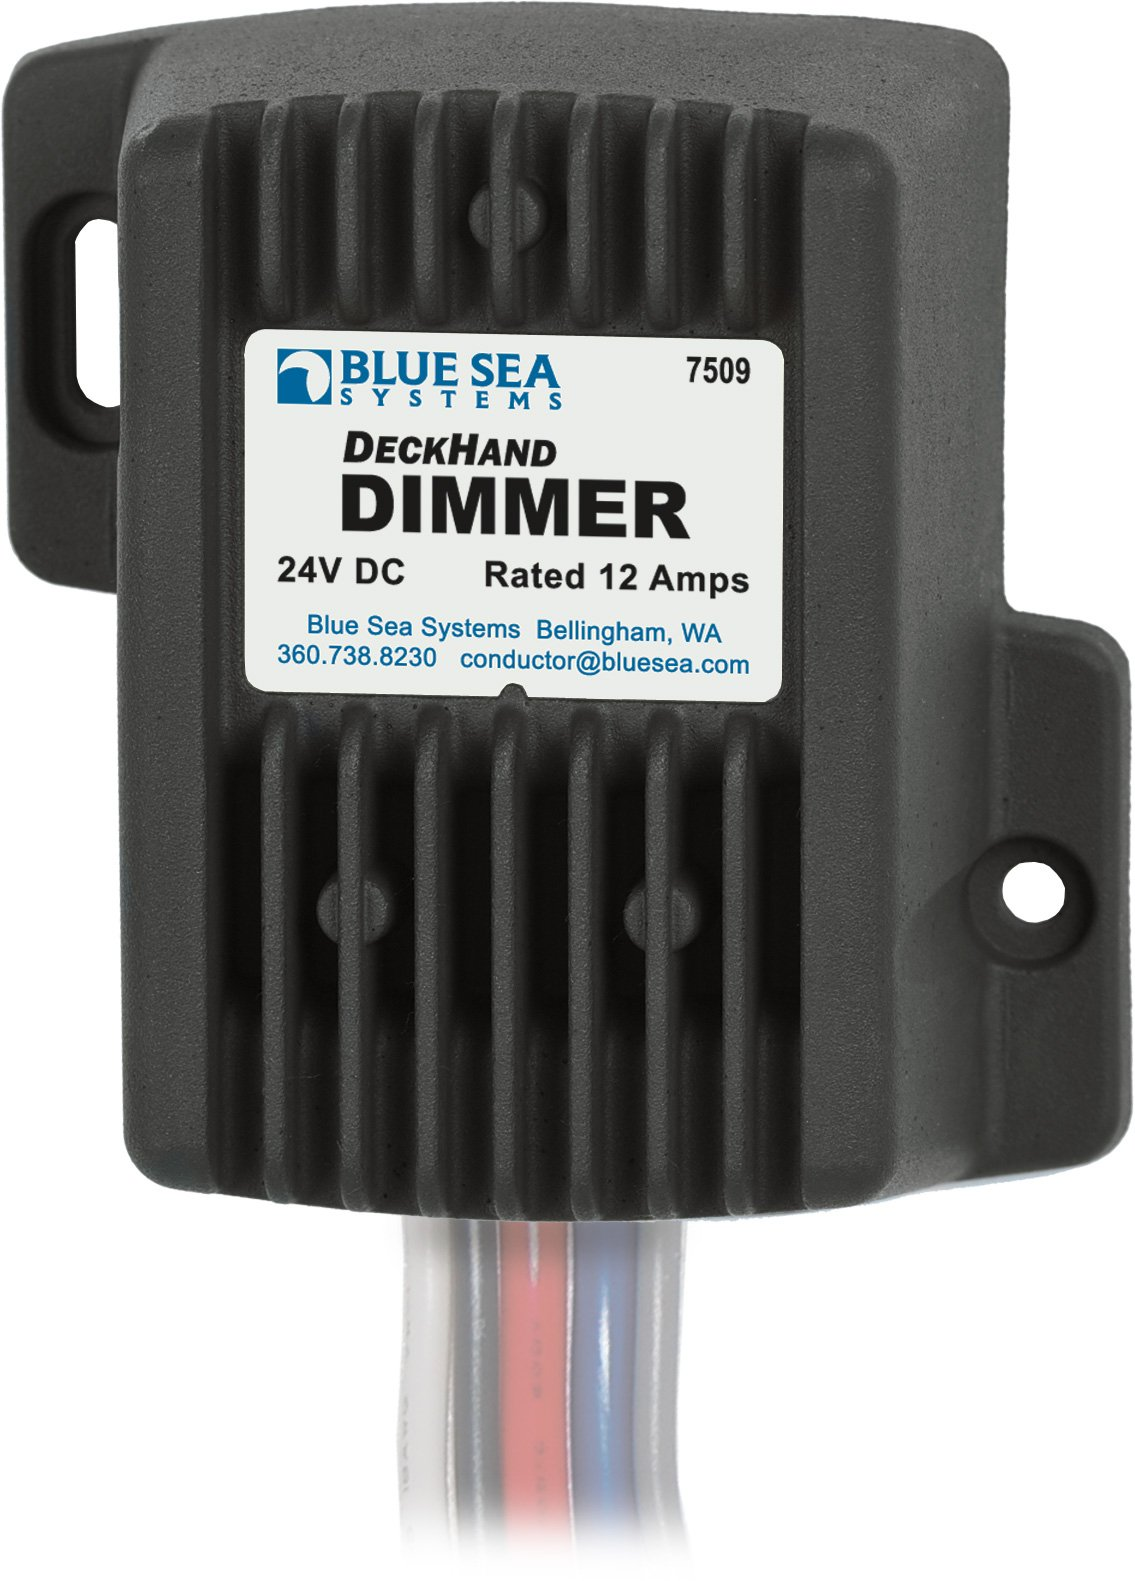 Blue Sea Systems 24V DC 12A Deckhand Dimmer